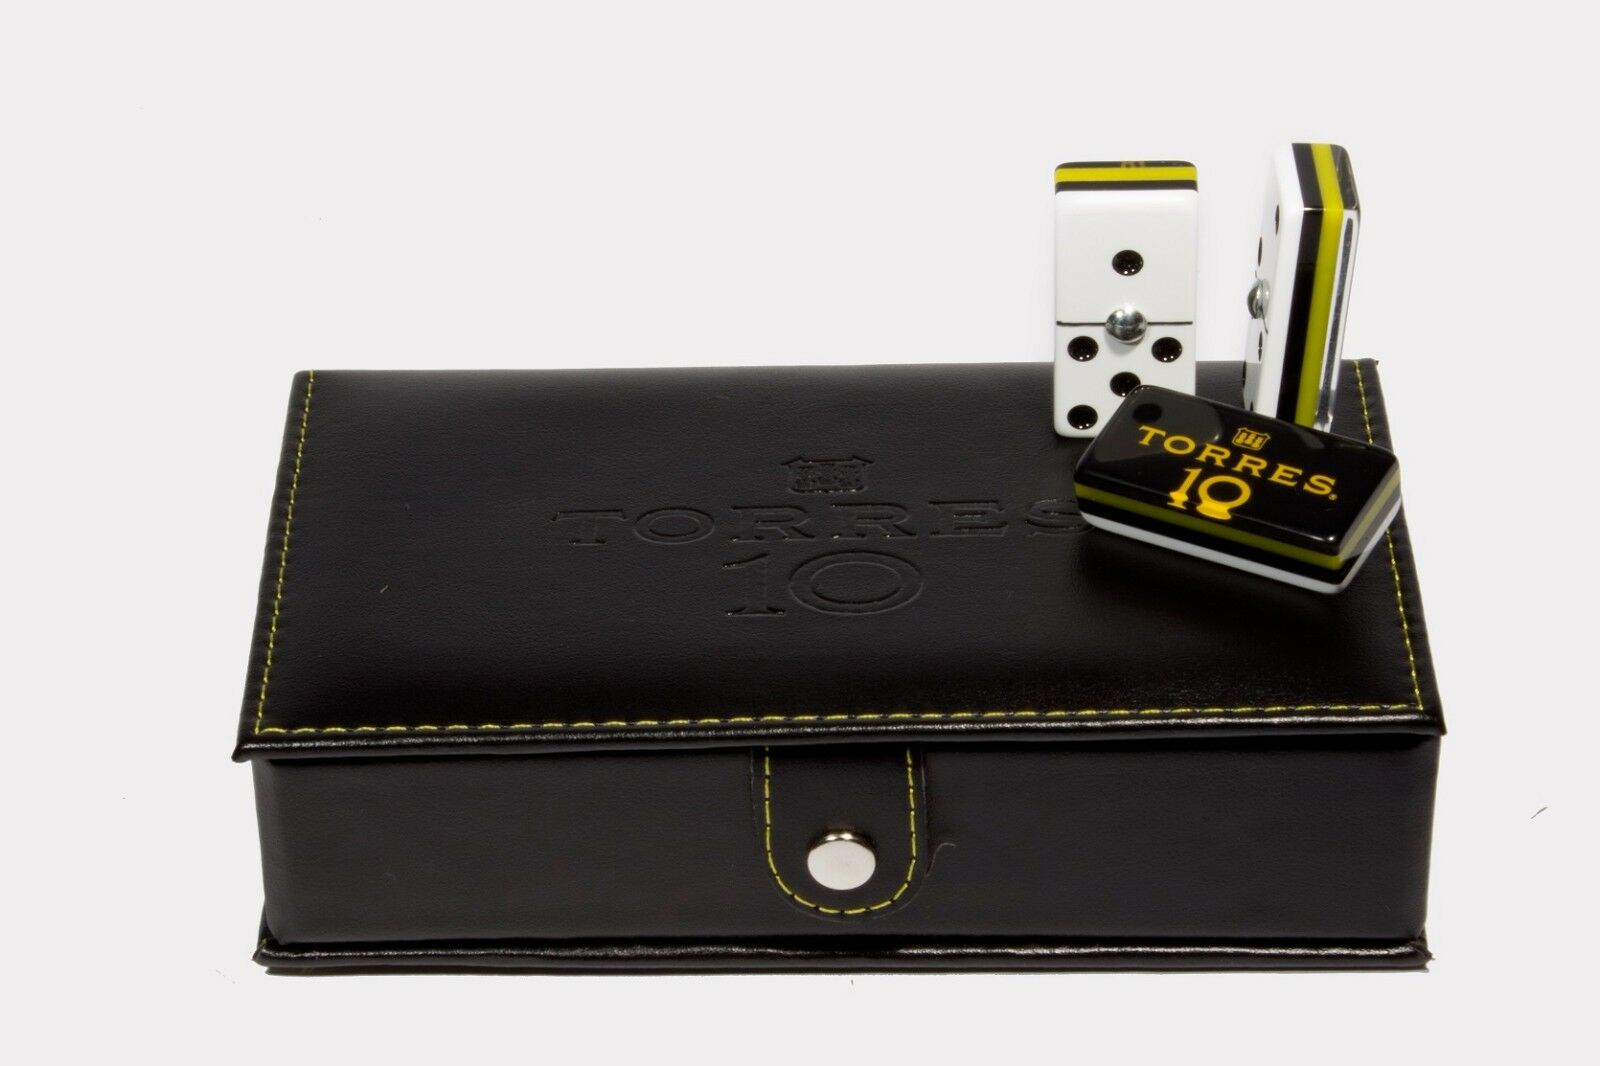 Torres 10 Domino 100% Acrylic, Faux Leather Case